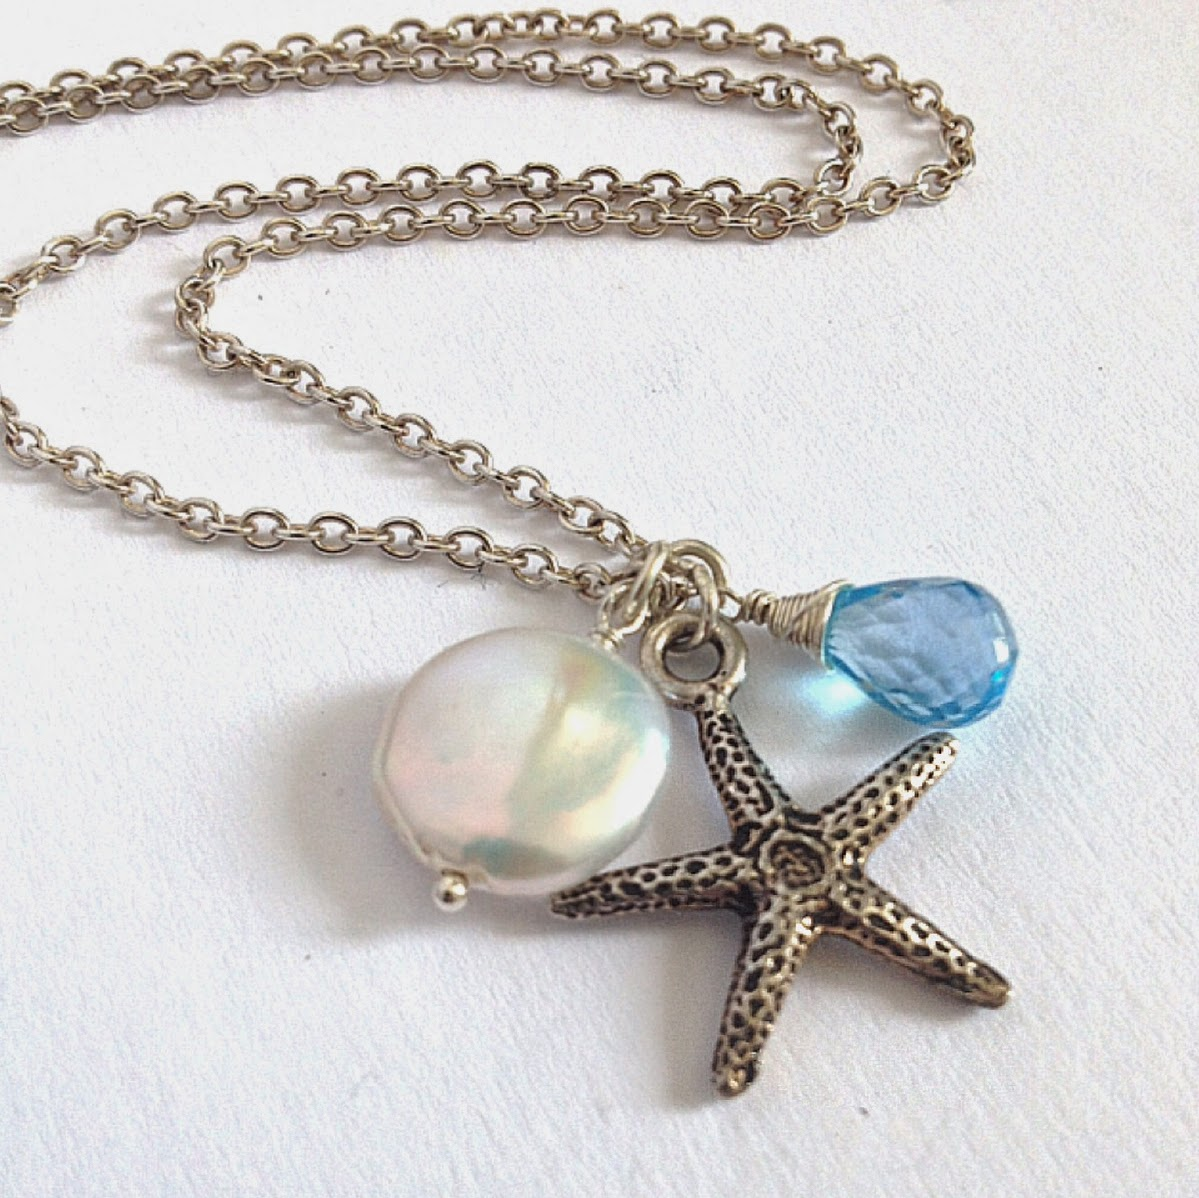 https://www.etsy.com/listing/188591663/starfish-pearl-swiss-blue-topaz-necklace